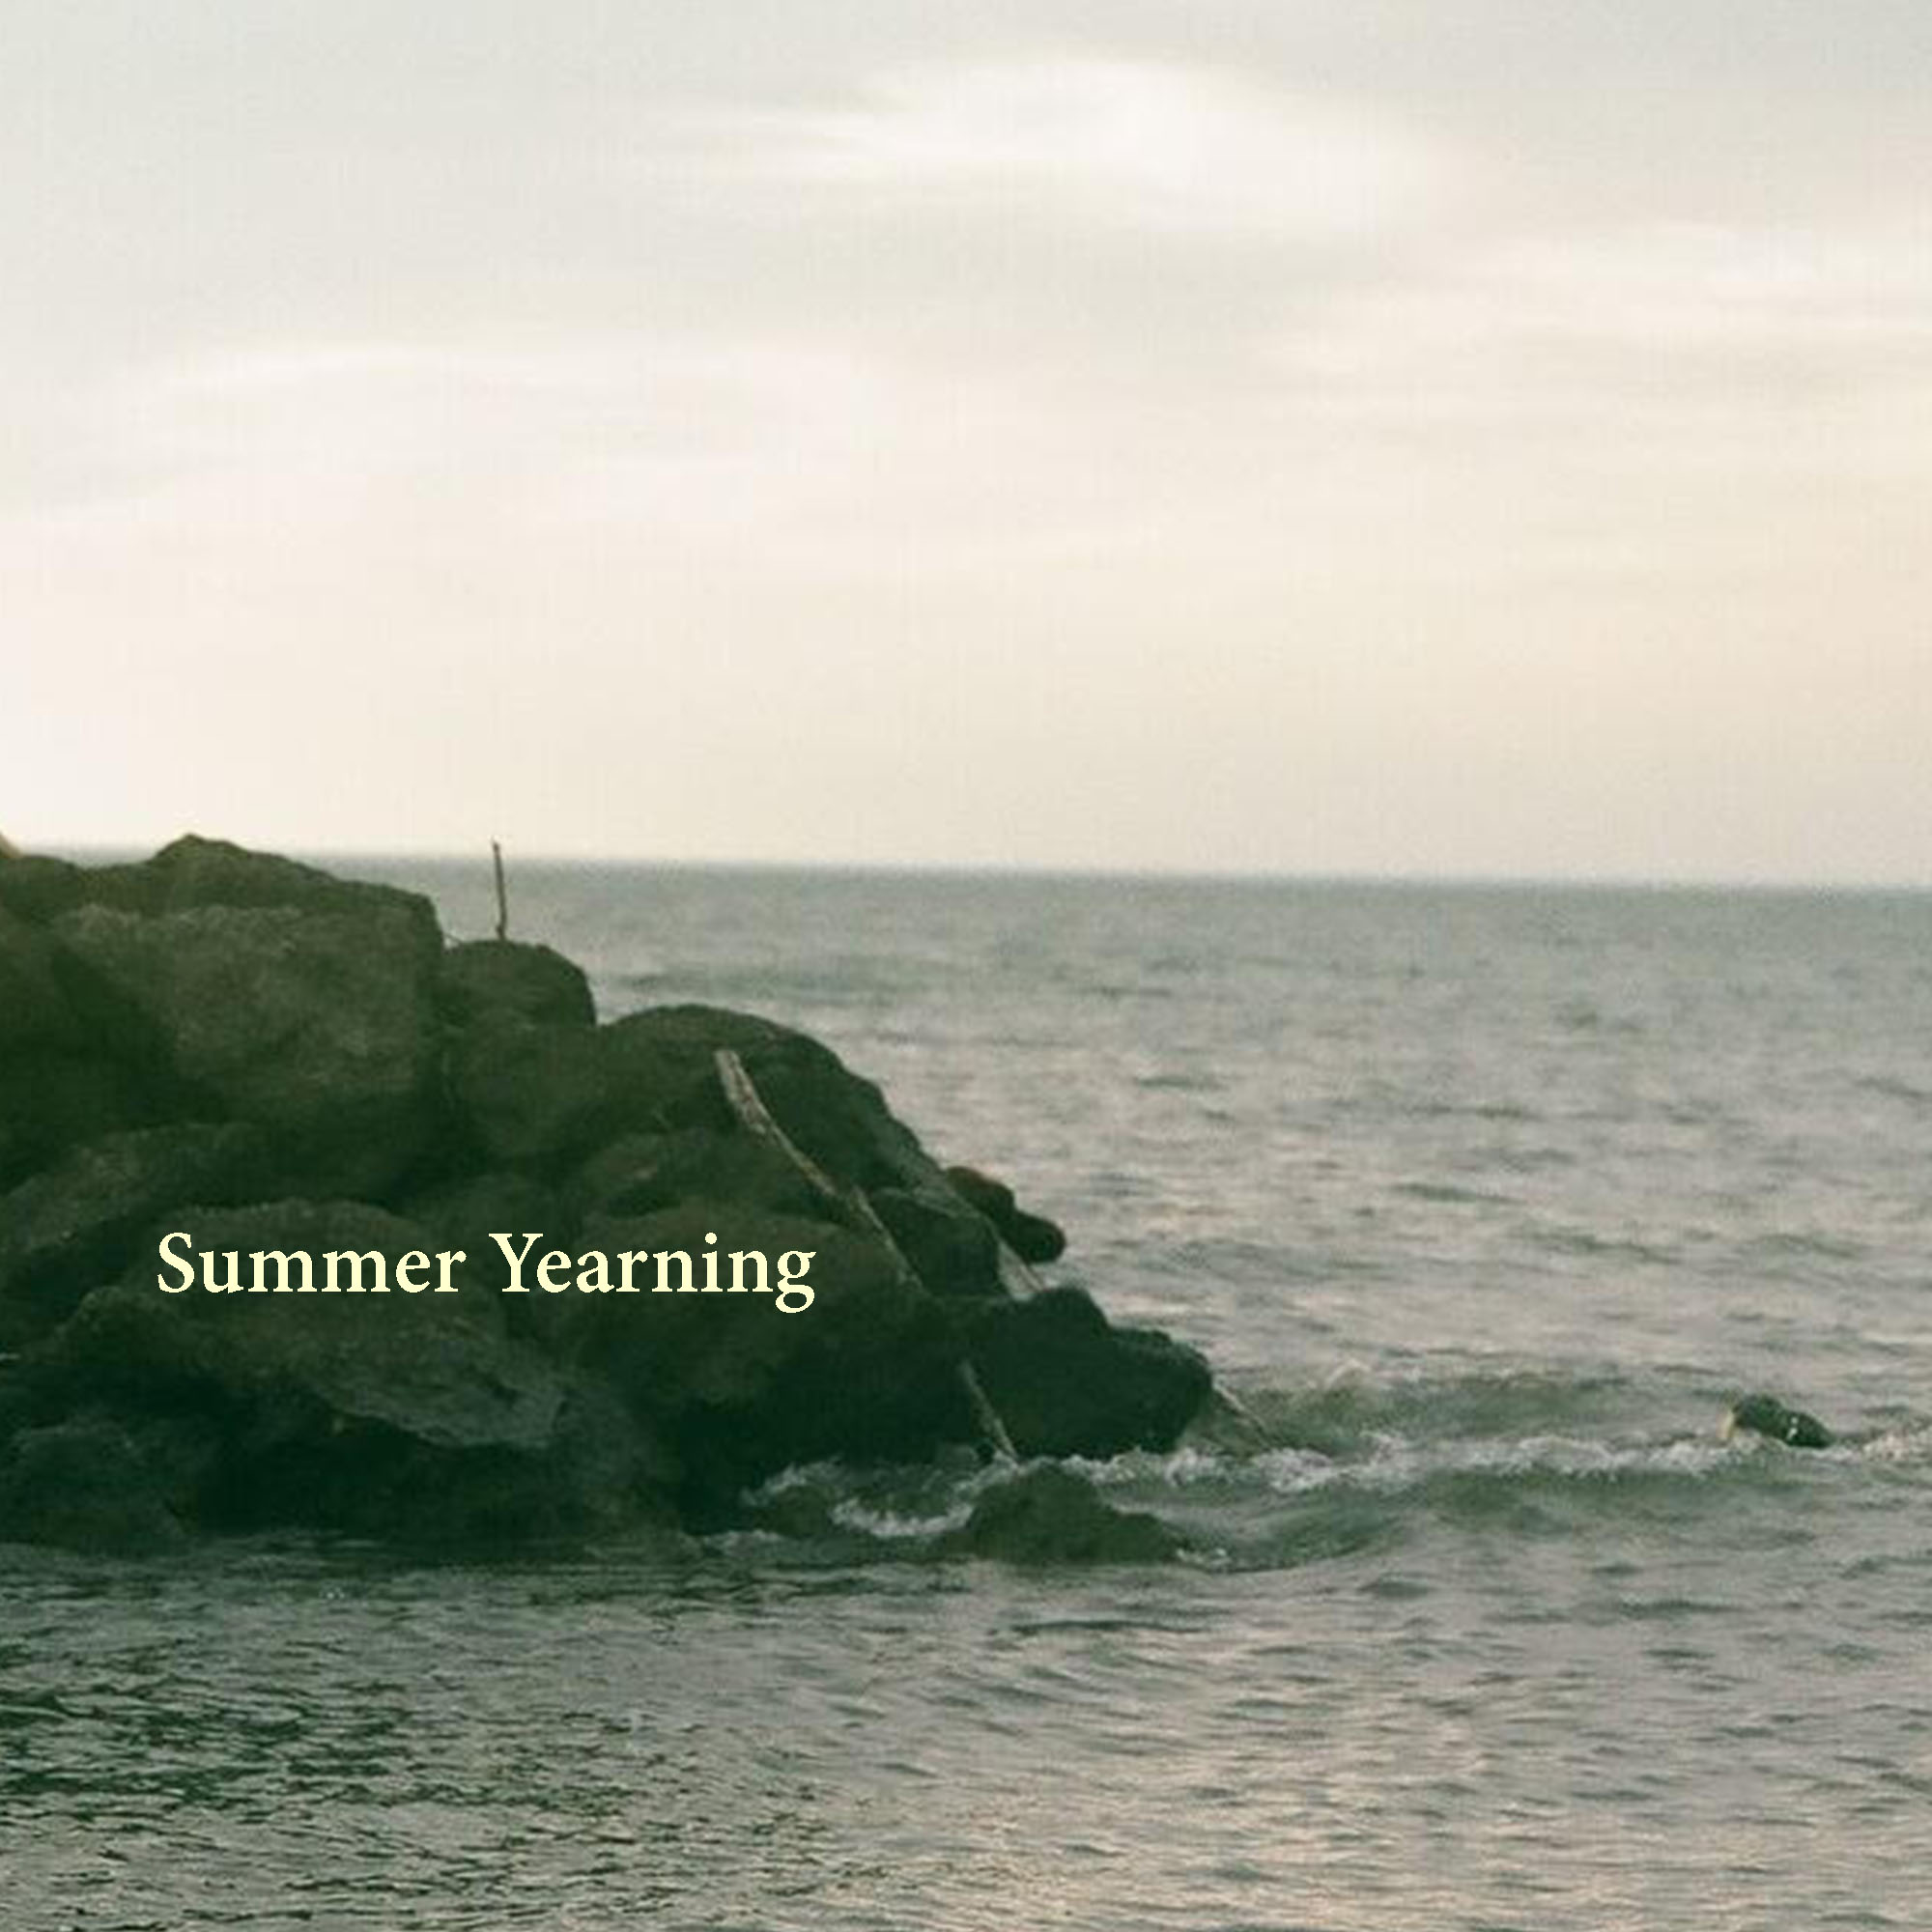 Summer Yearning   By Cayla Coomer.